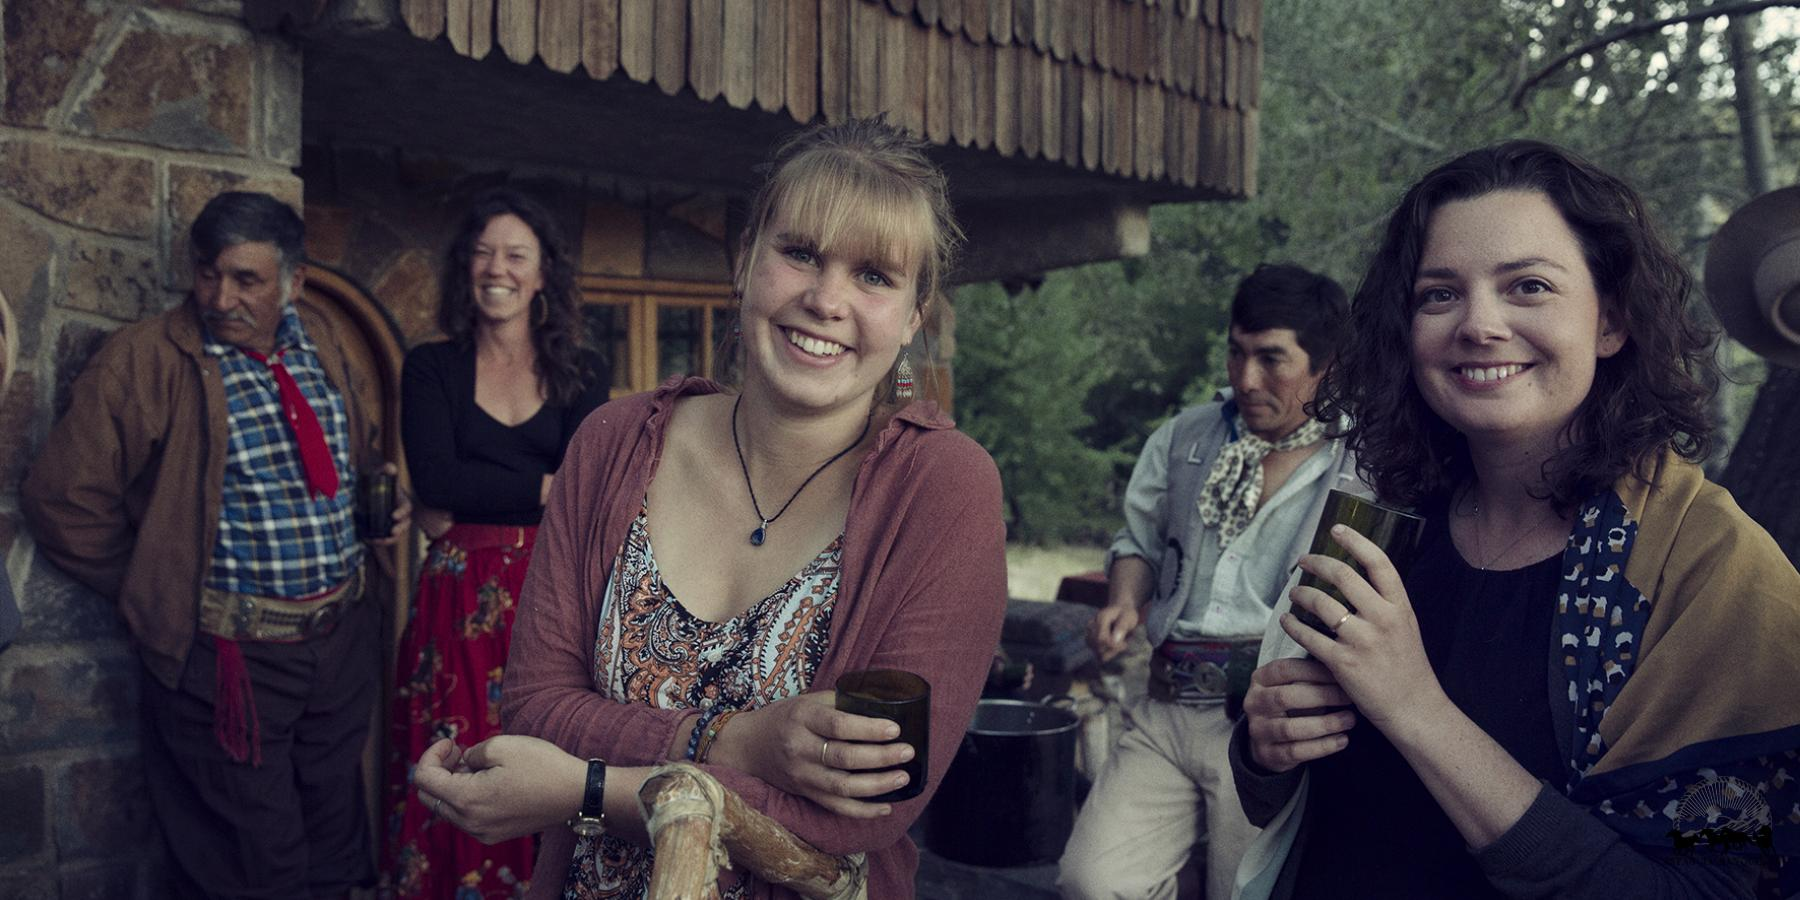 Friends at a community asado in Patagonia